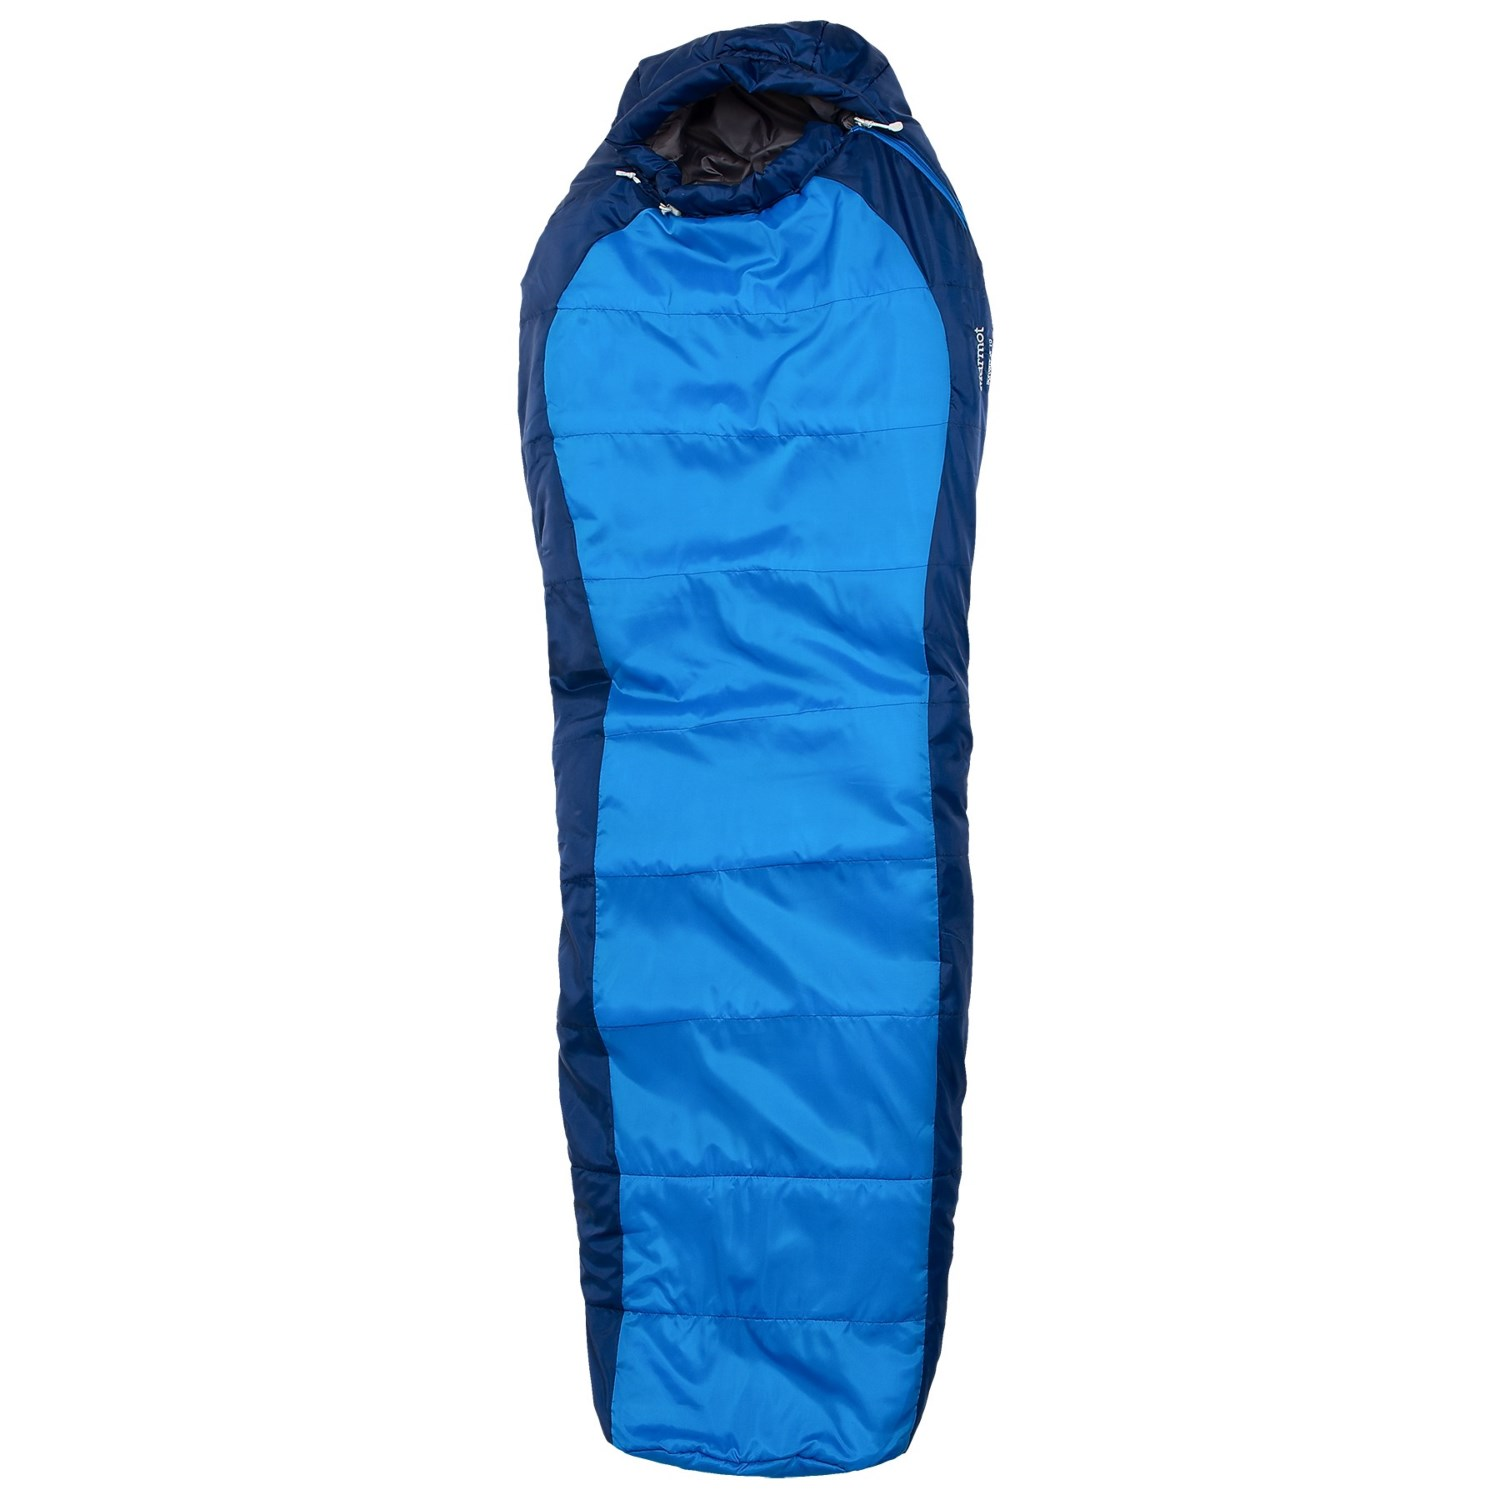 Marmot 15°F Sorcerer Jr. Sleeping Bag (For Kids)